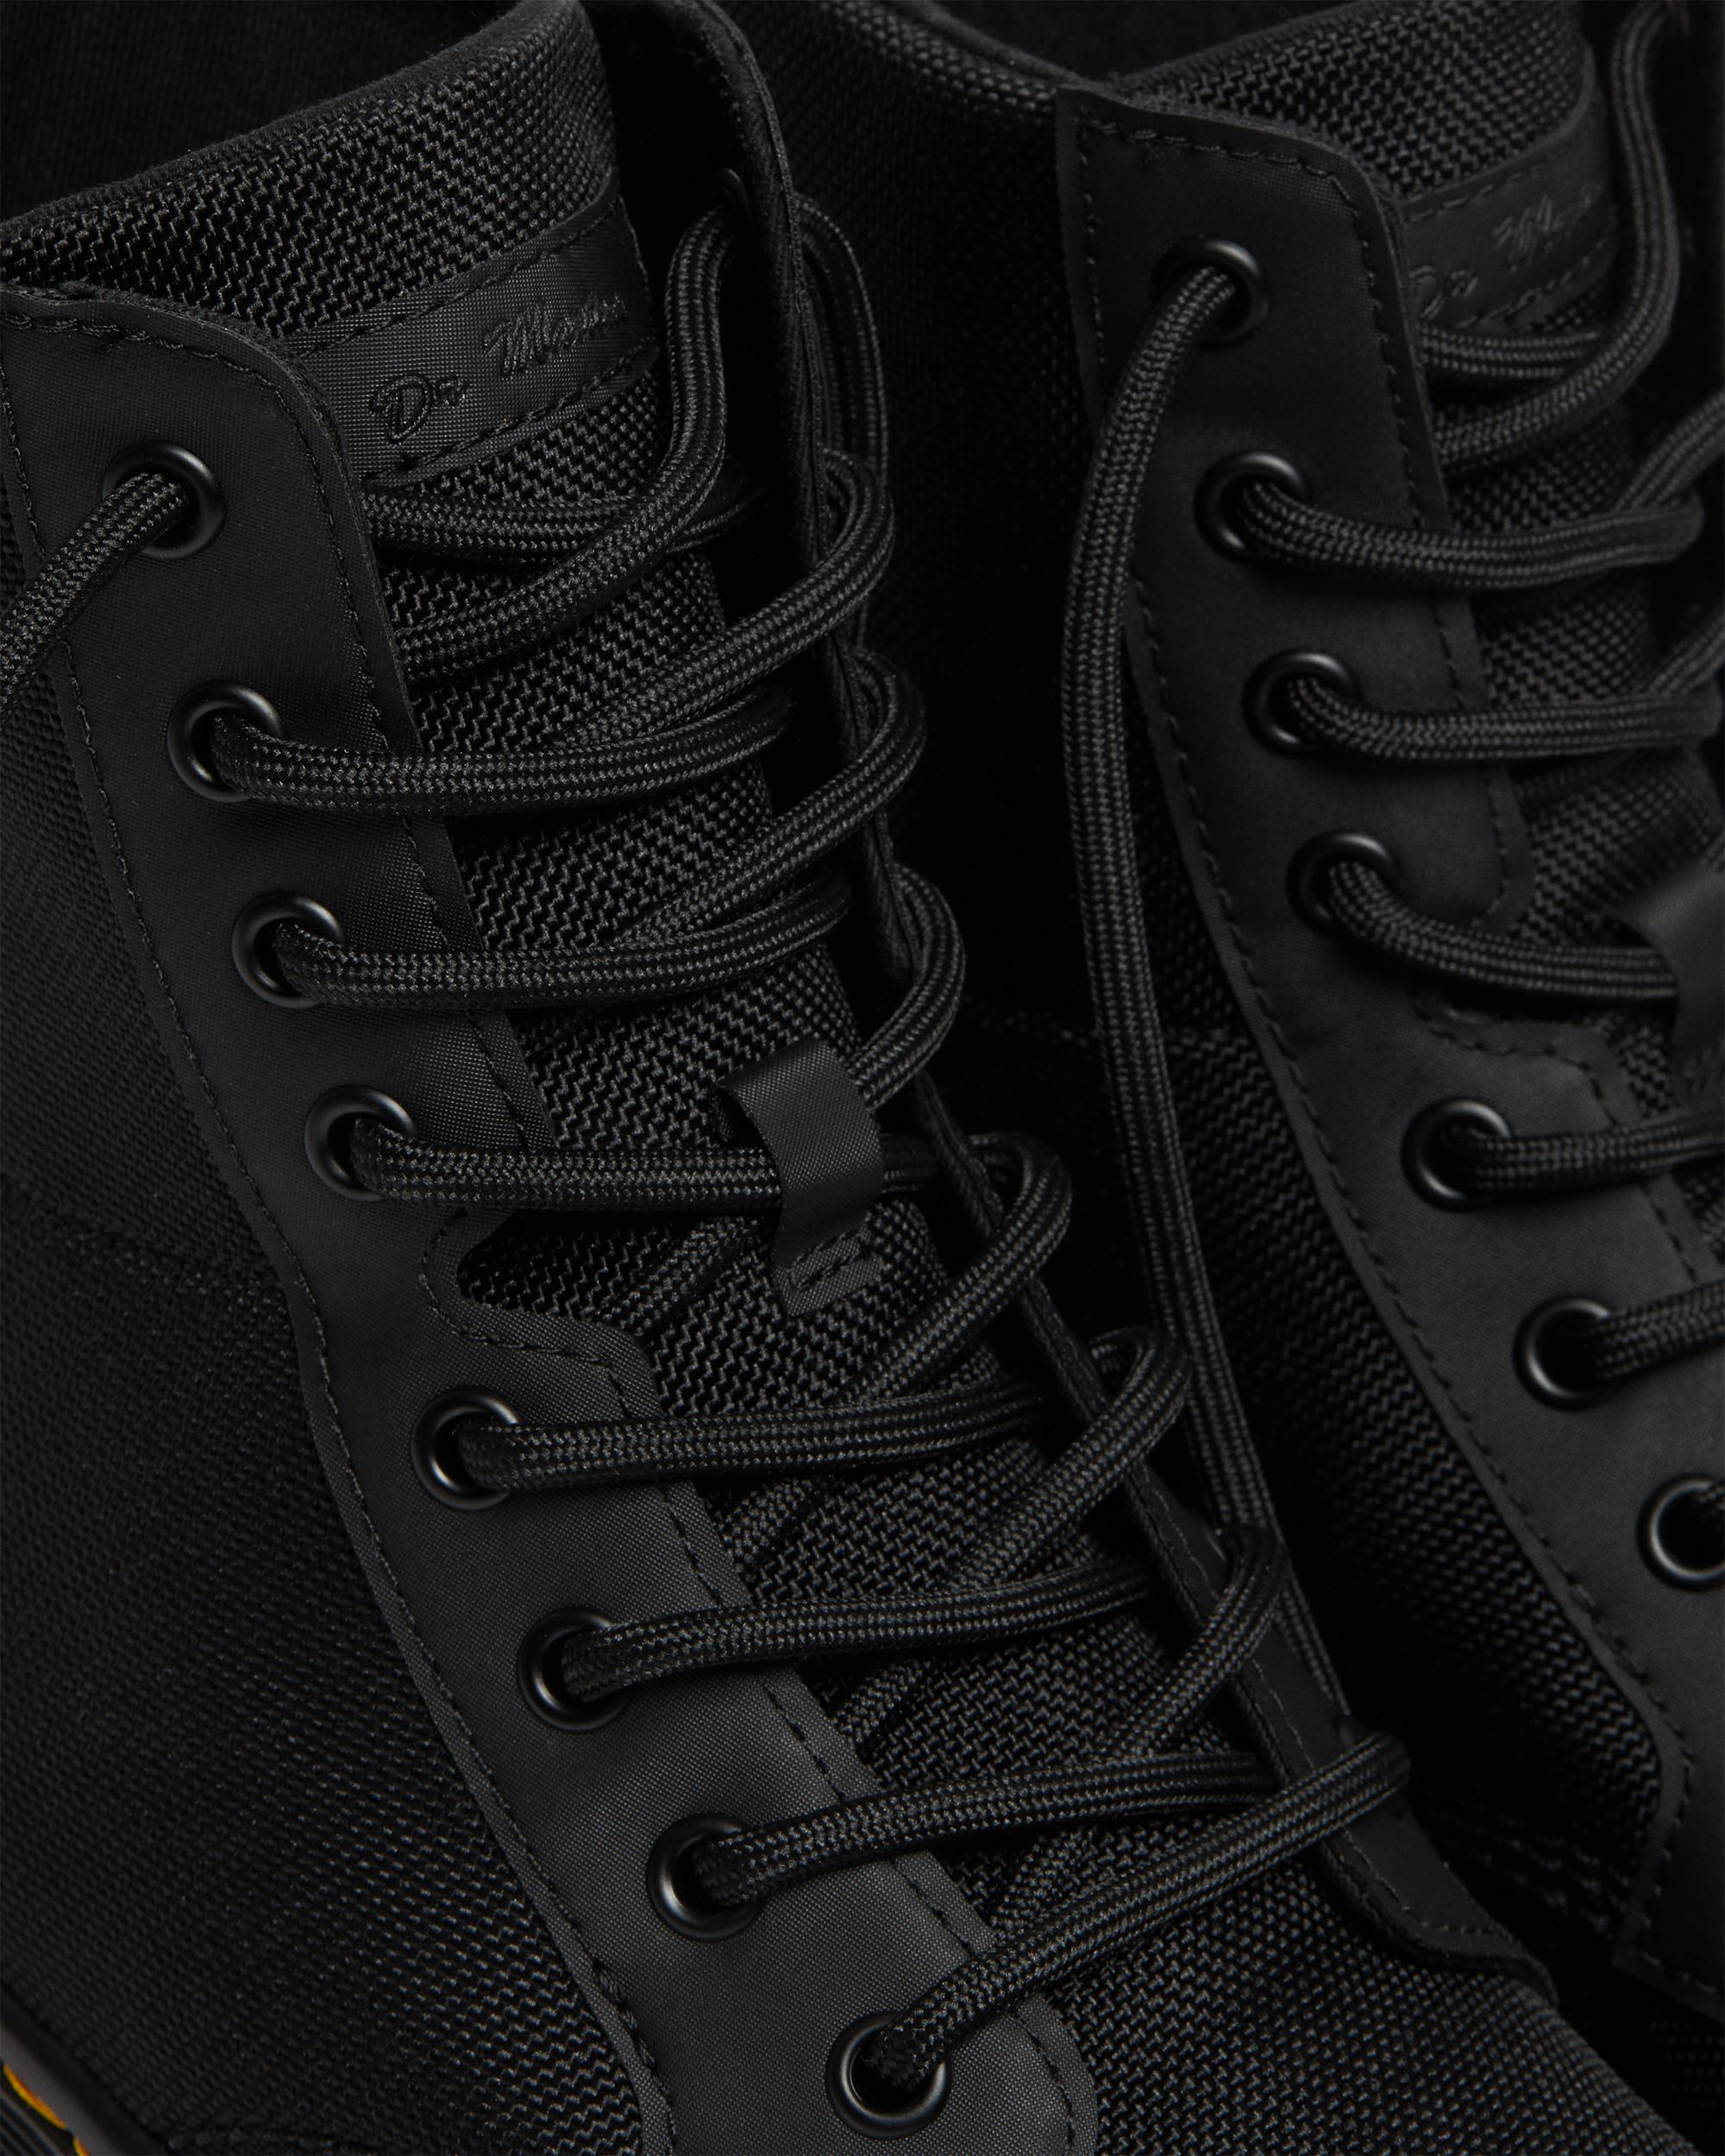 Dr. Martens Combs Tract Boots Black Extra Tough Nylon